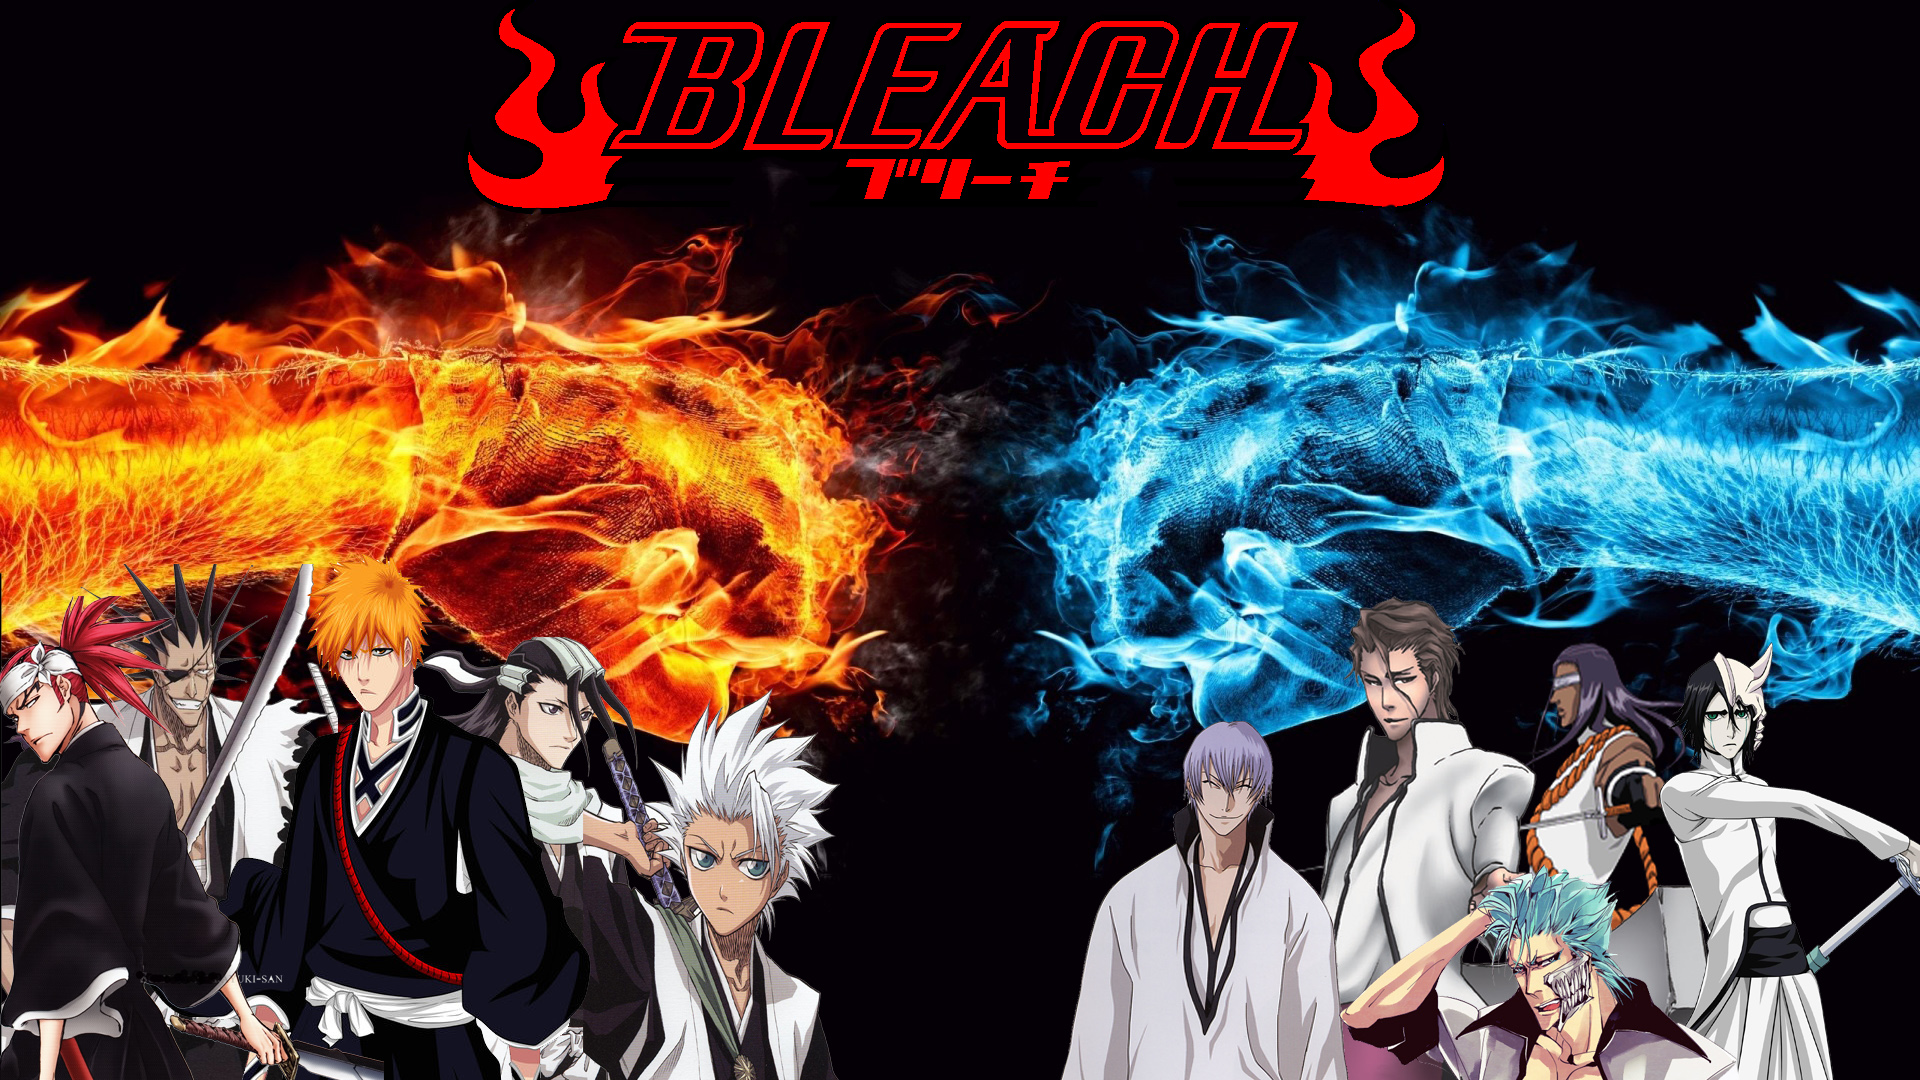 download bleach anime wallpapers which is under the anime wallpapers 1920x1080